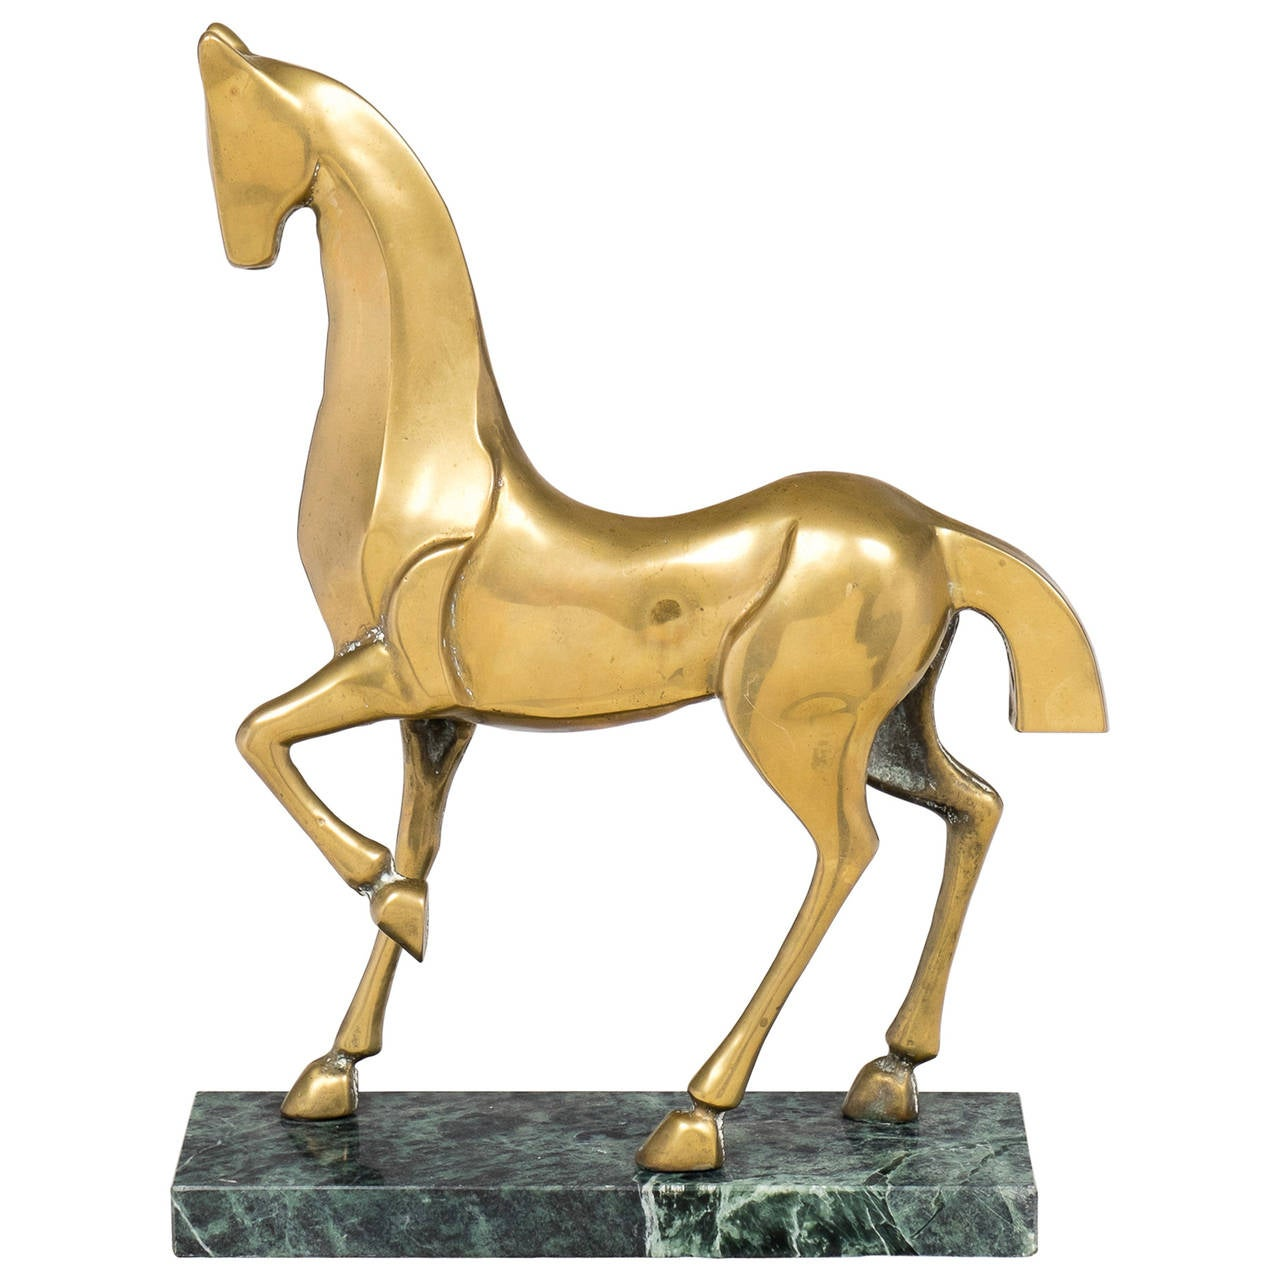 Italian Art Deco Etruscan Horse Sculpture at 1stdibs